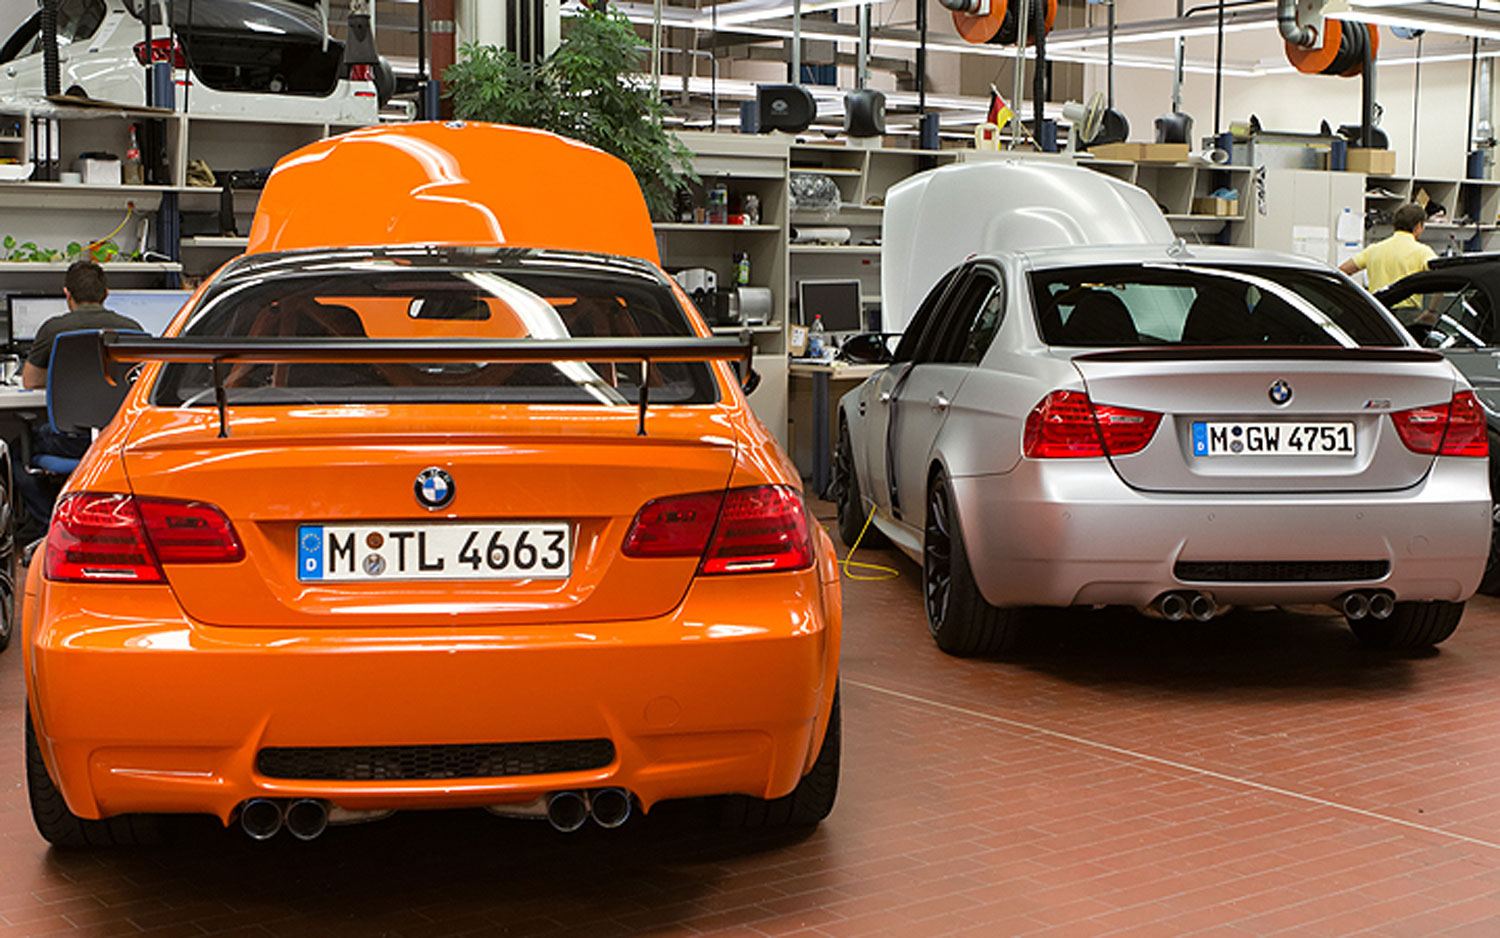 Feature Flick: 2012 BMW X5 M Challenges M3 at Laguna Seca; Who Wins?